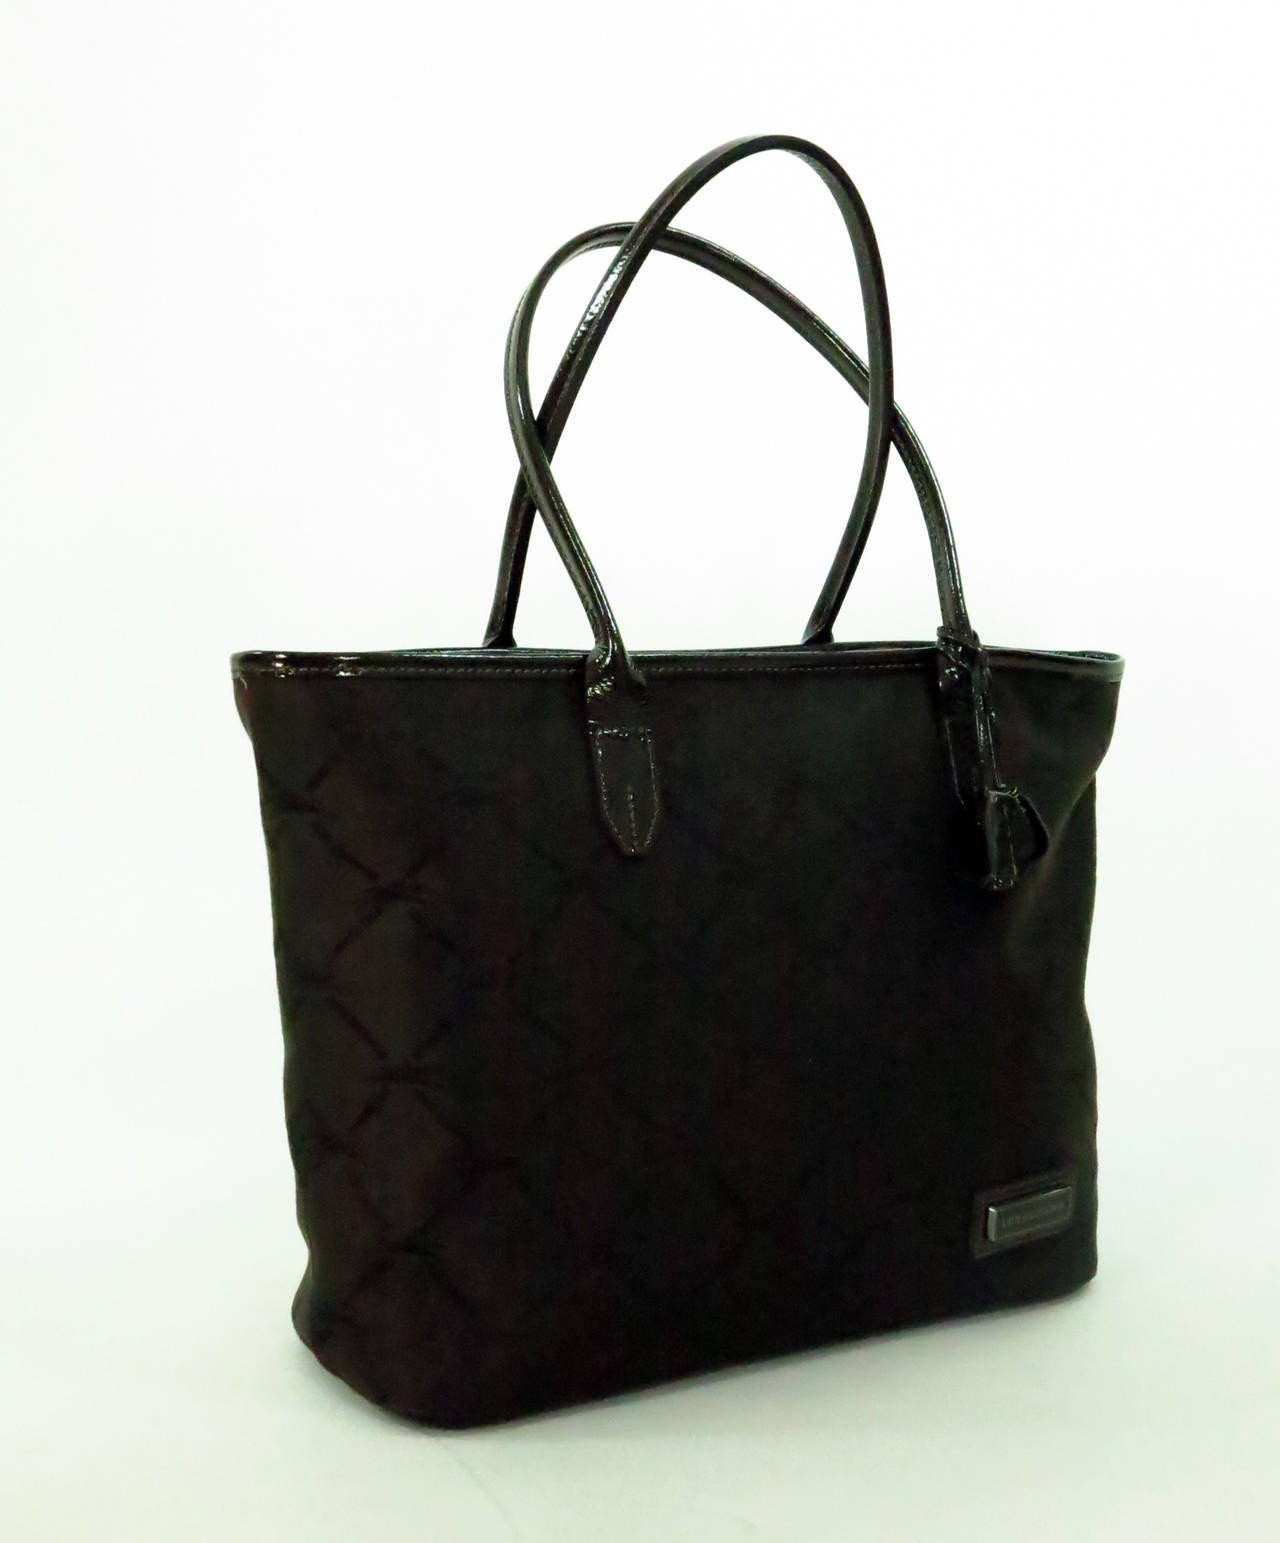 b3ba7b80d2 Longchamp double handle tote bag in chocolate brown patent leather & logo  fabric.